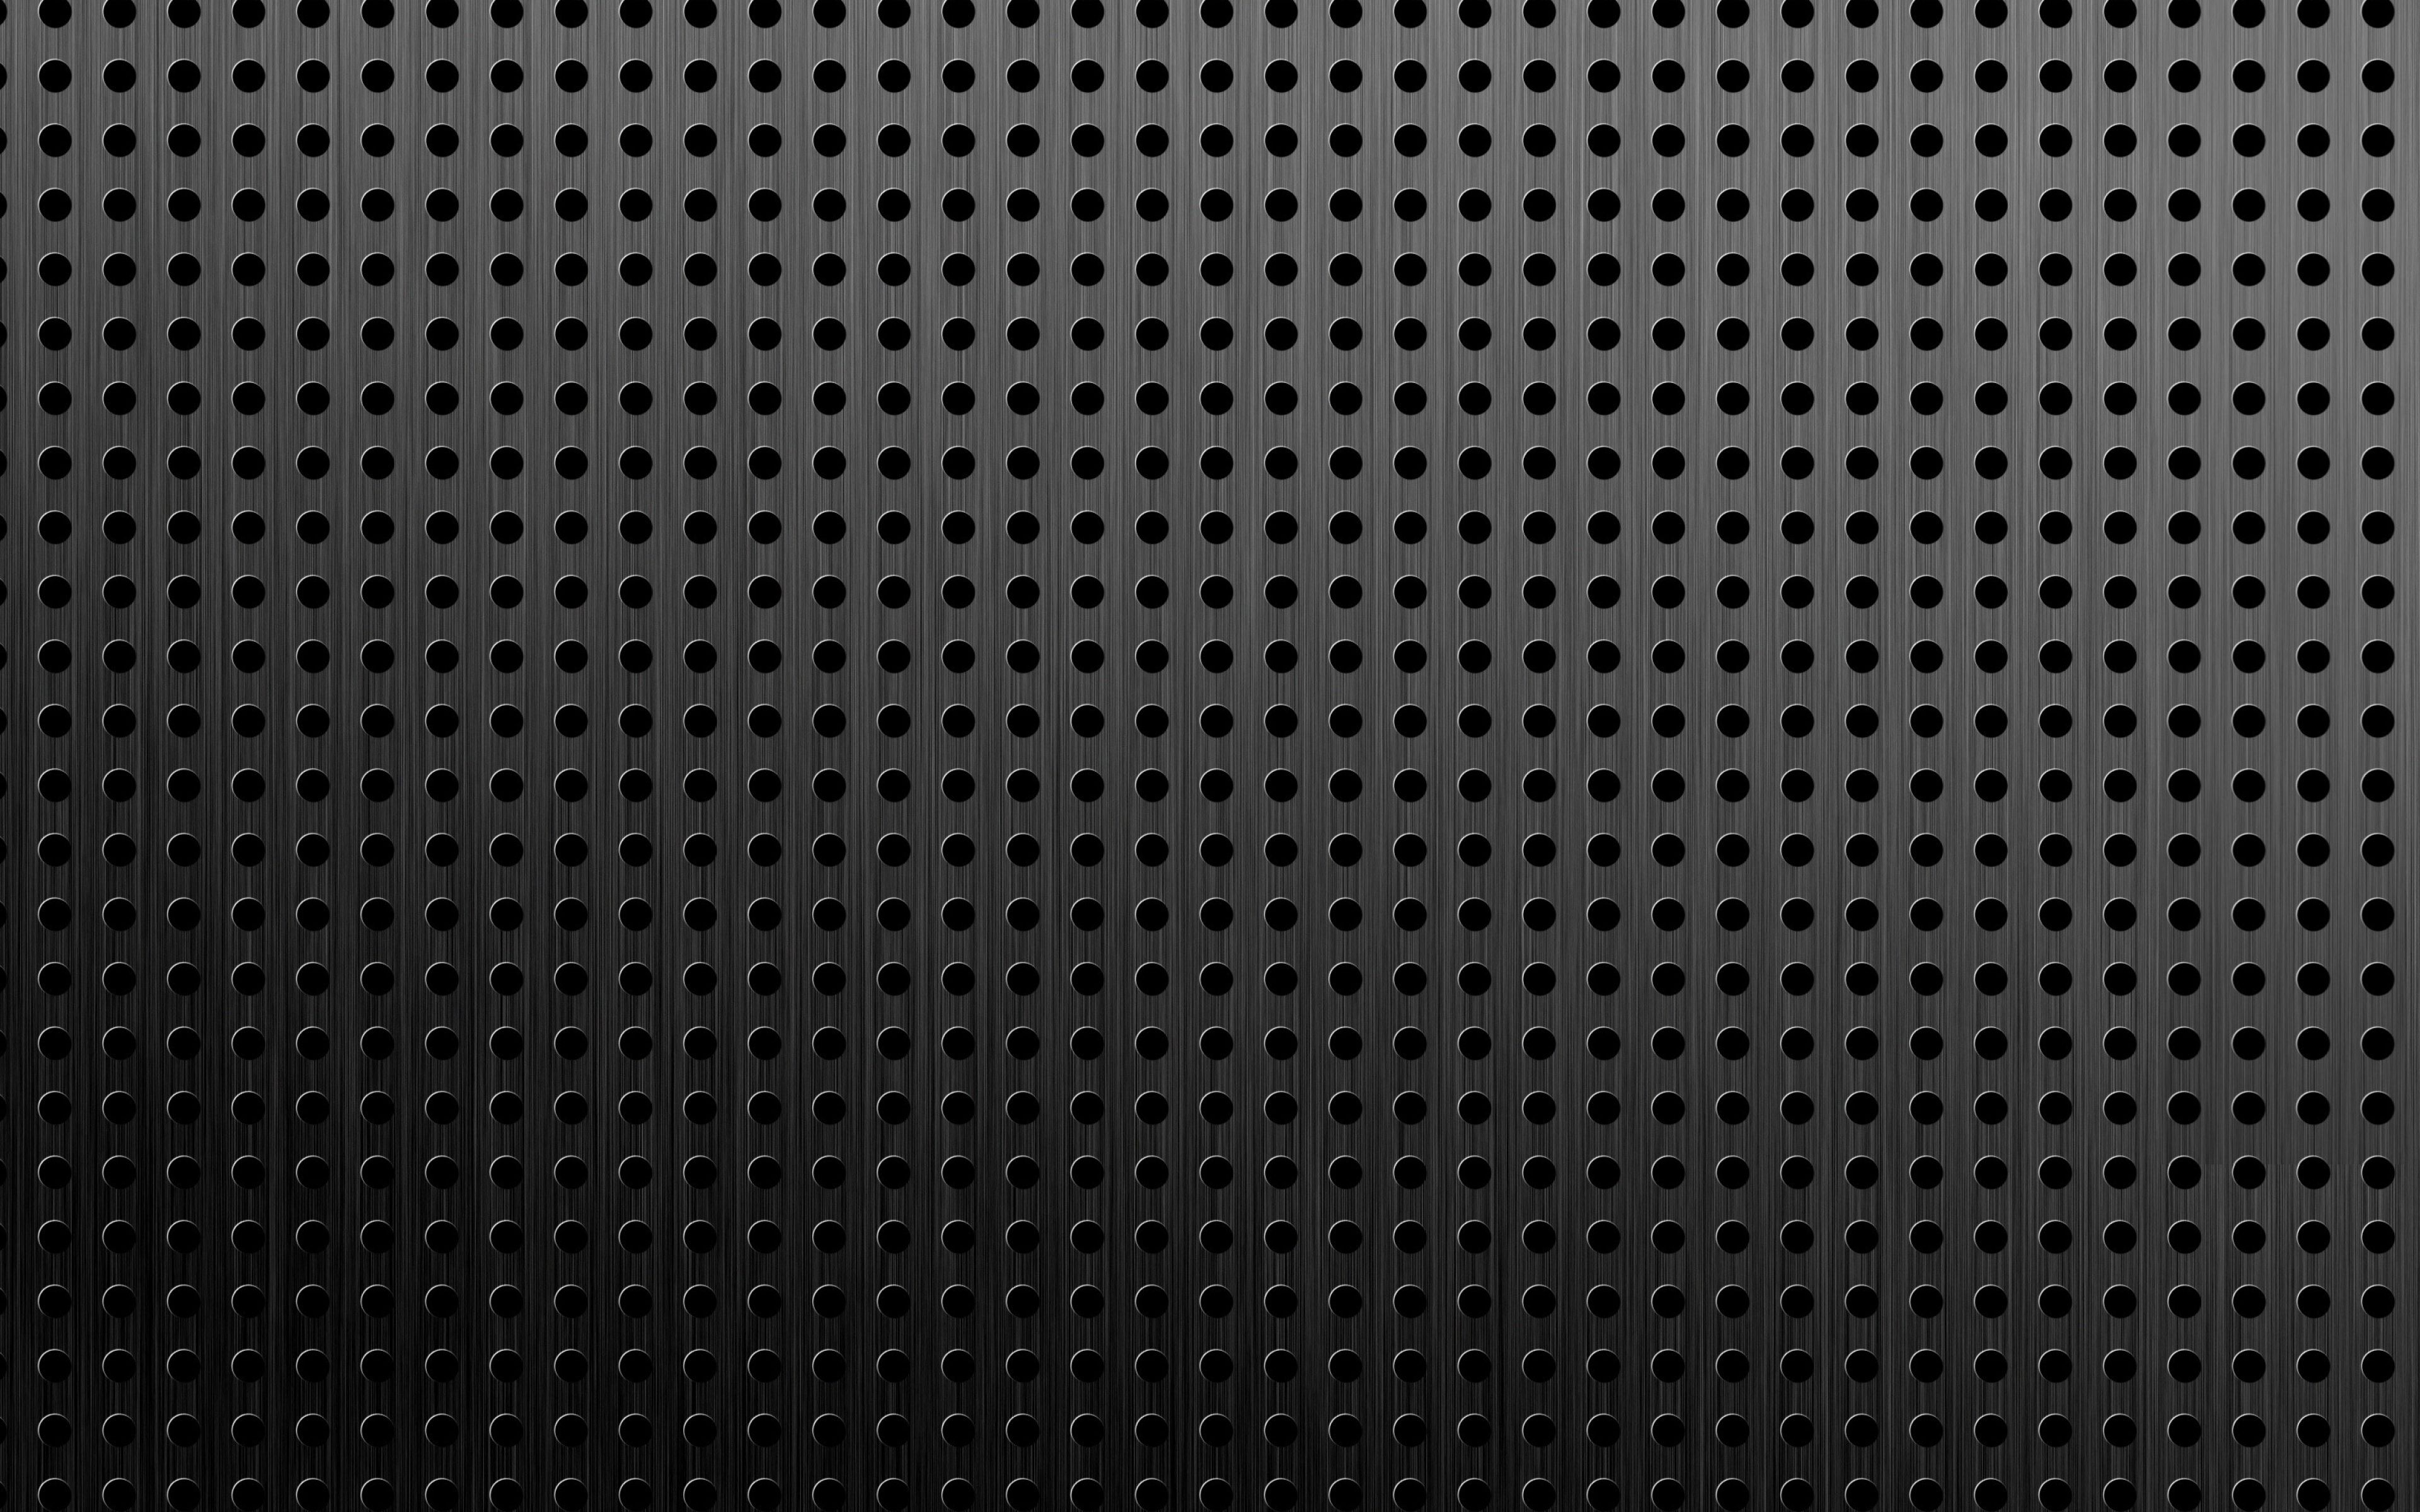 Perforated Metal Black I Think Timber Would Be Better